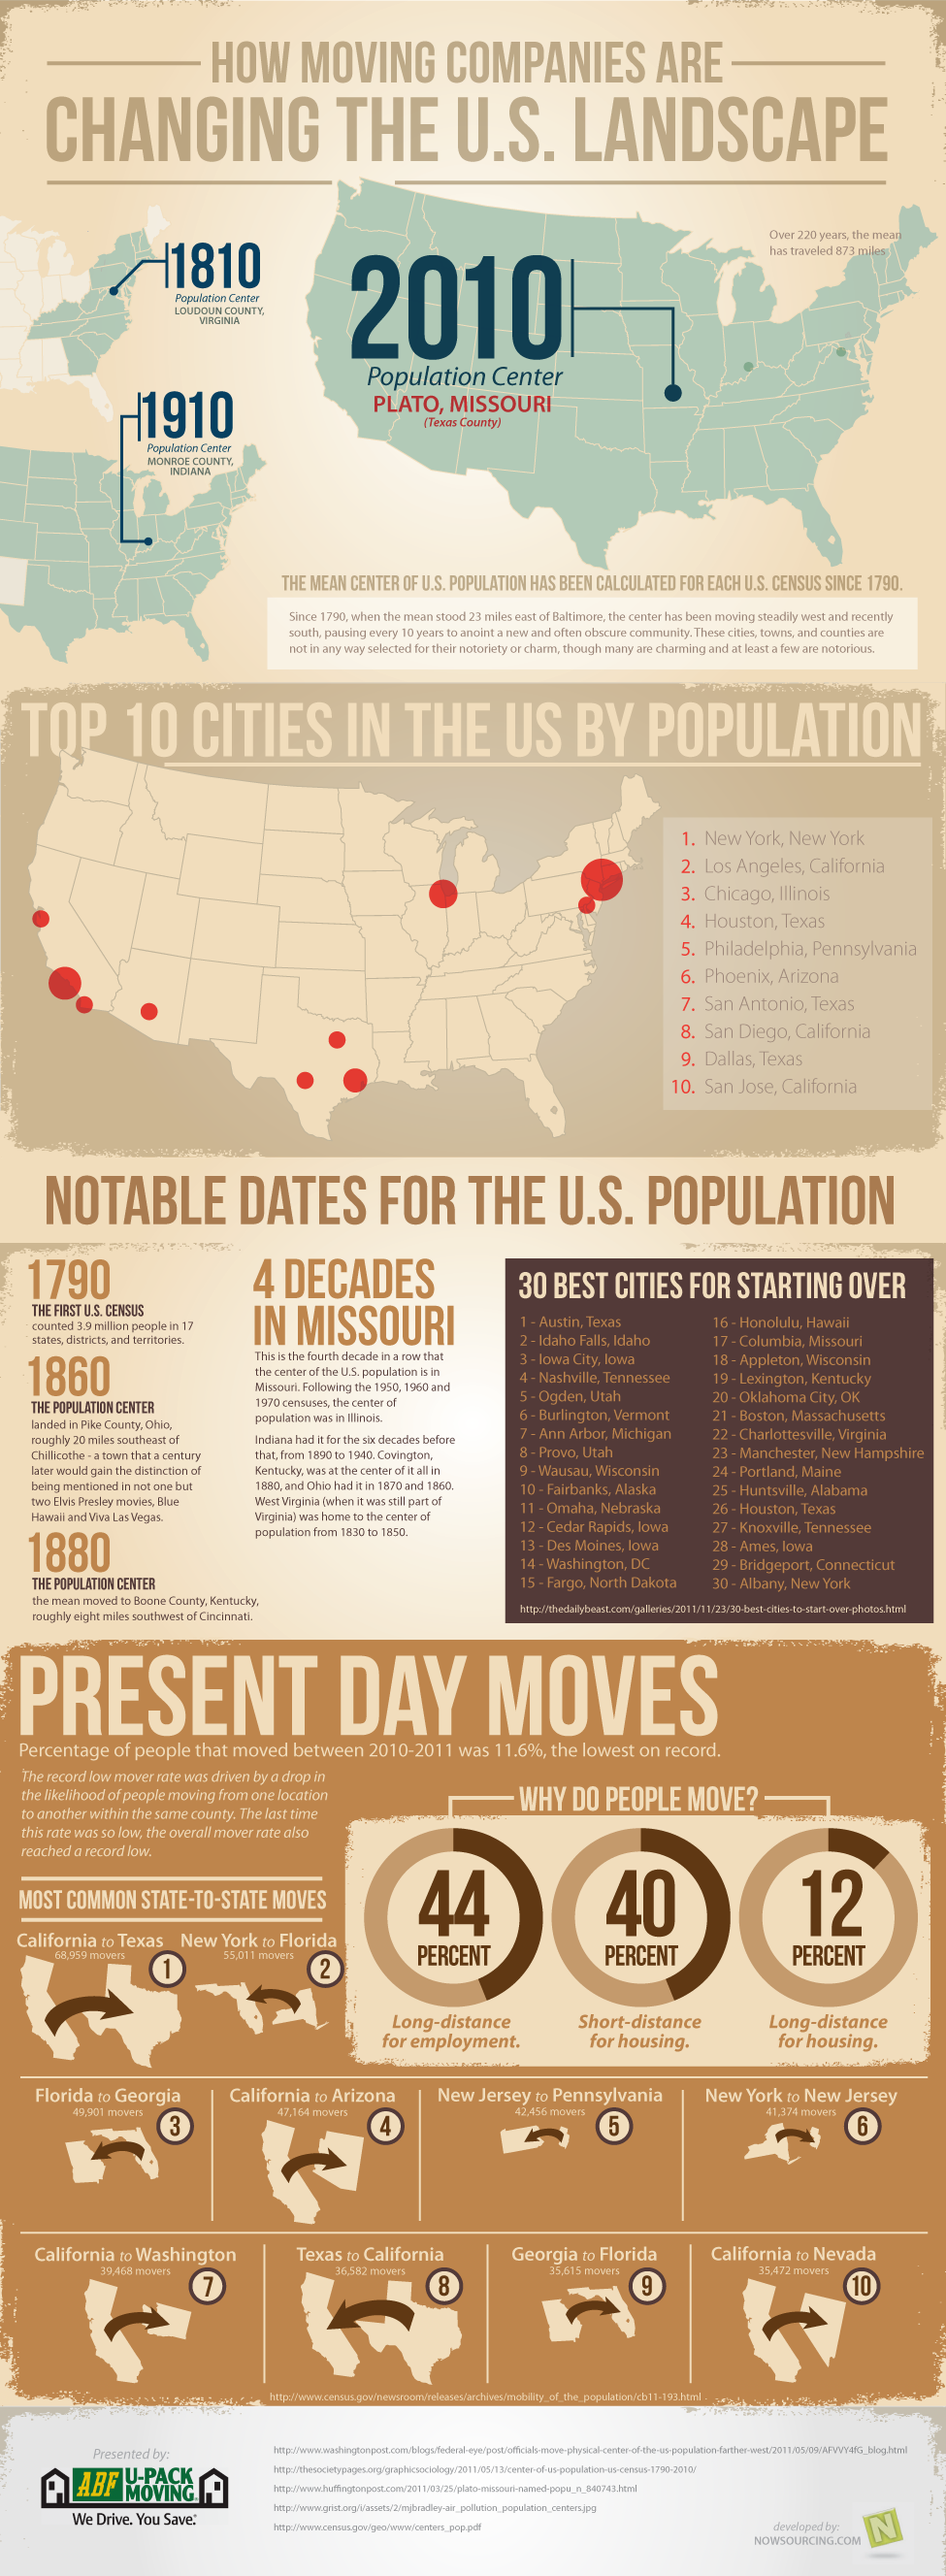 Where are People Moving?